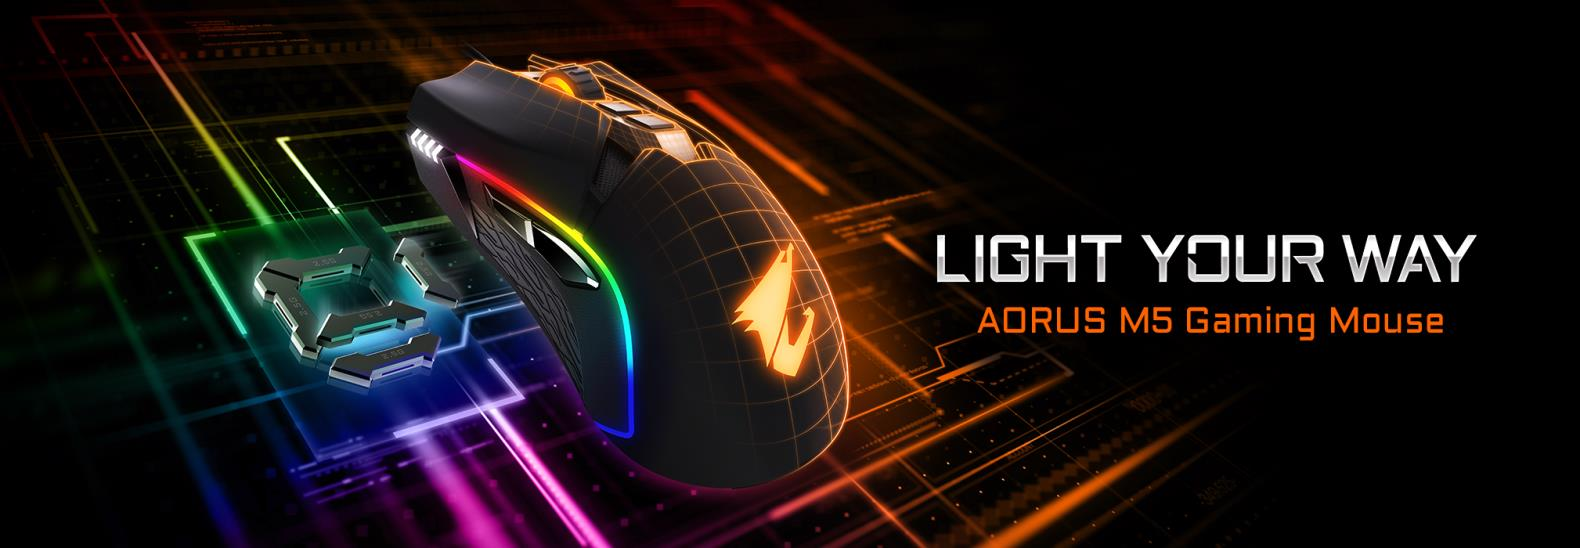 cdd9c1a49ad Taipei, Taiwan, August 6th, 2018 – GIGABYTE, the world's leading premium  gaming hardware manufacturer, today announced the release of new AORUS  gaming gear, ...